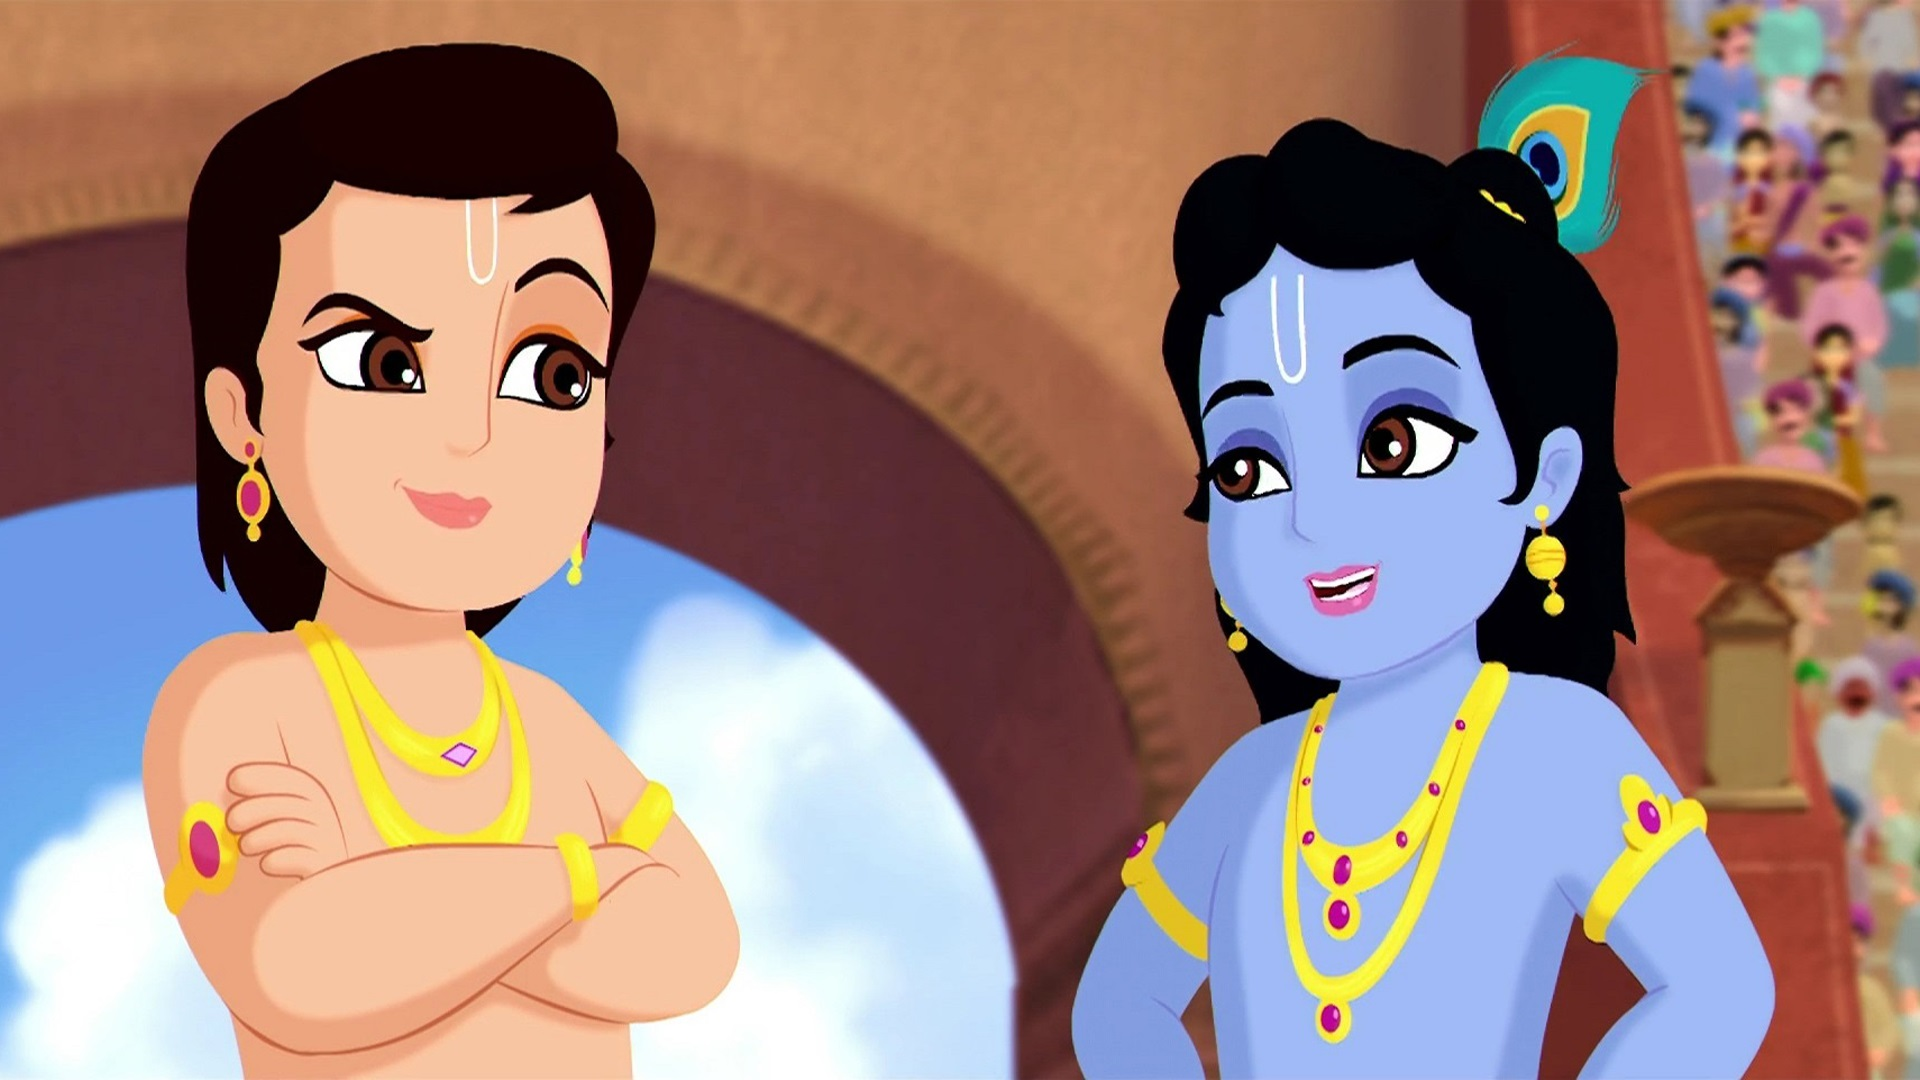 Reliance Animation — Krishna & Kans Preview Image 6